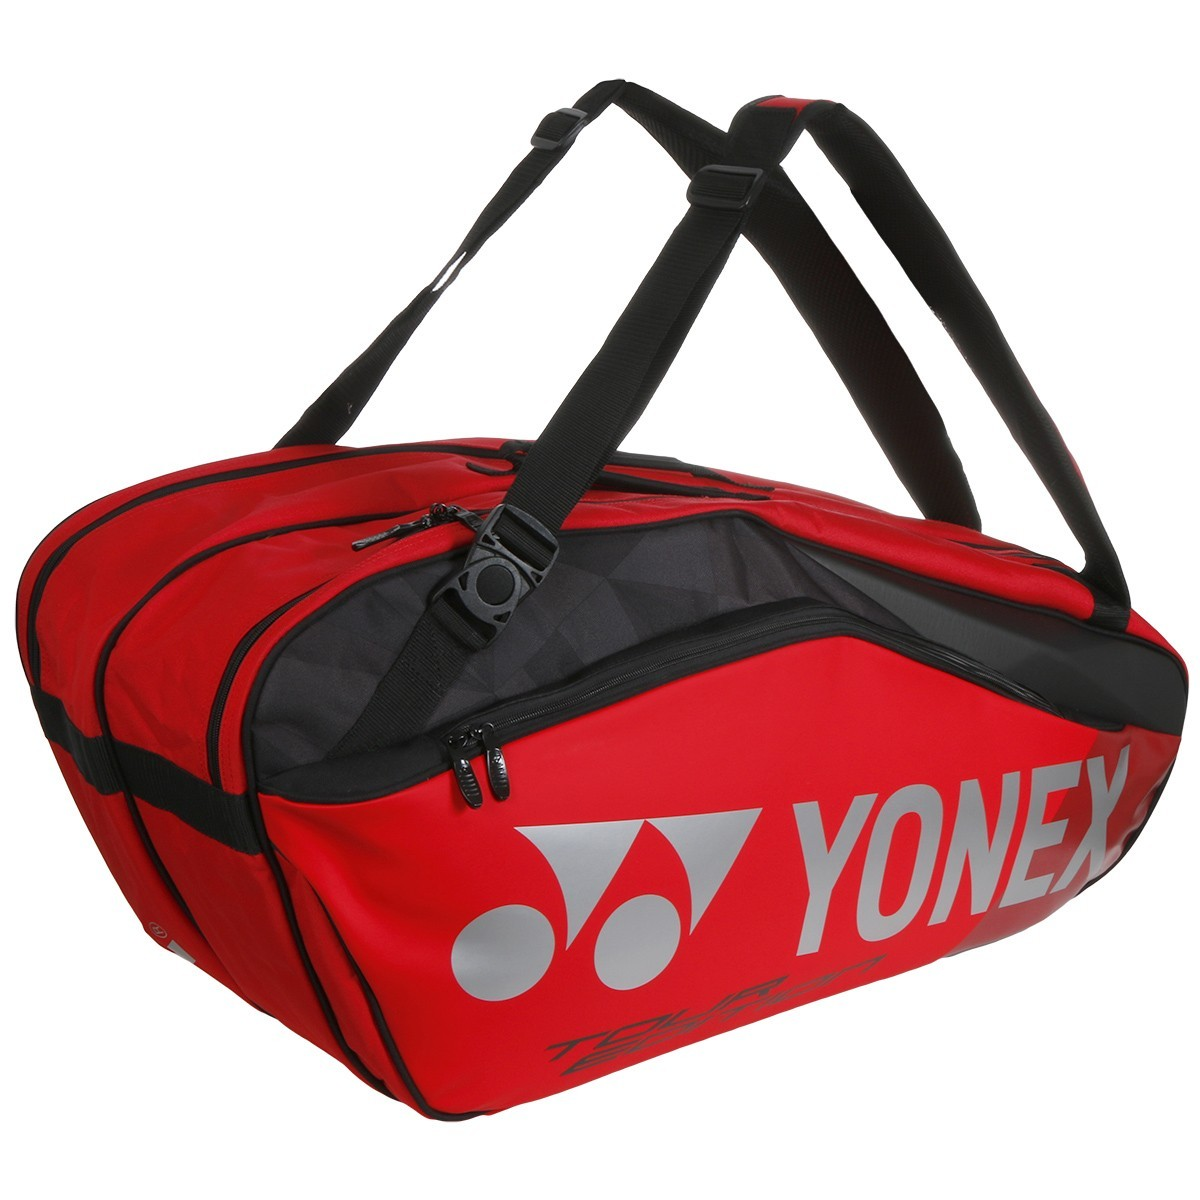 Torba tenisowa Yonex Pro Racquet Bag 6 Pack Flame Red